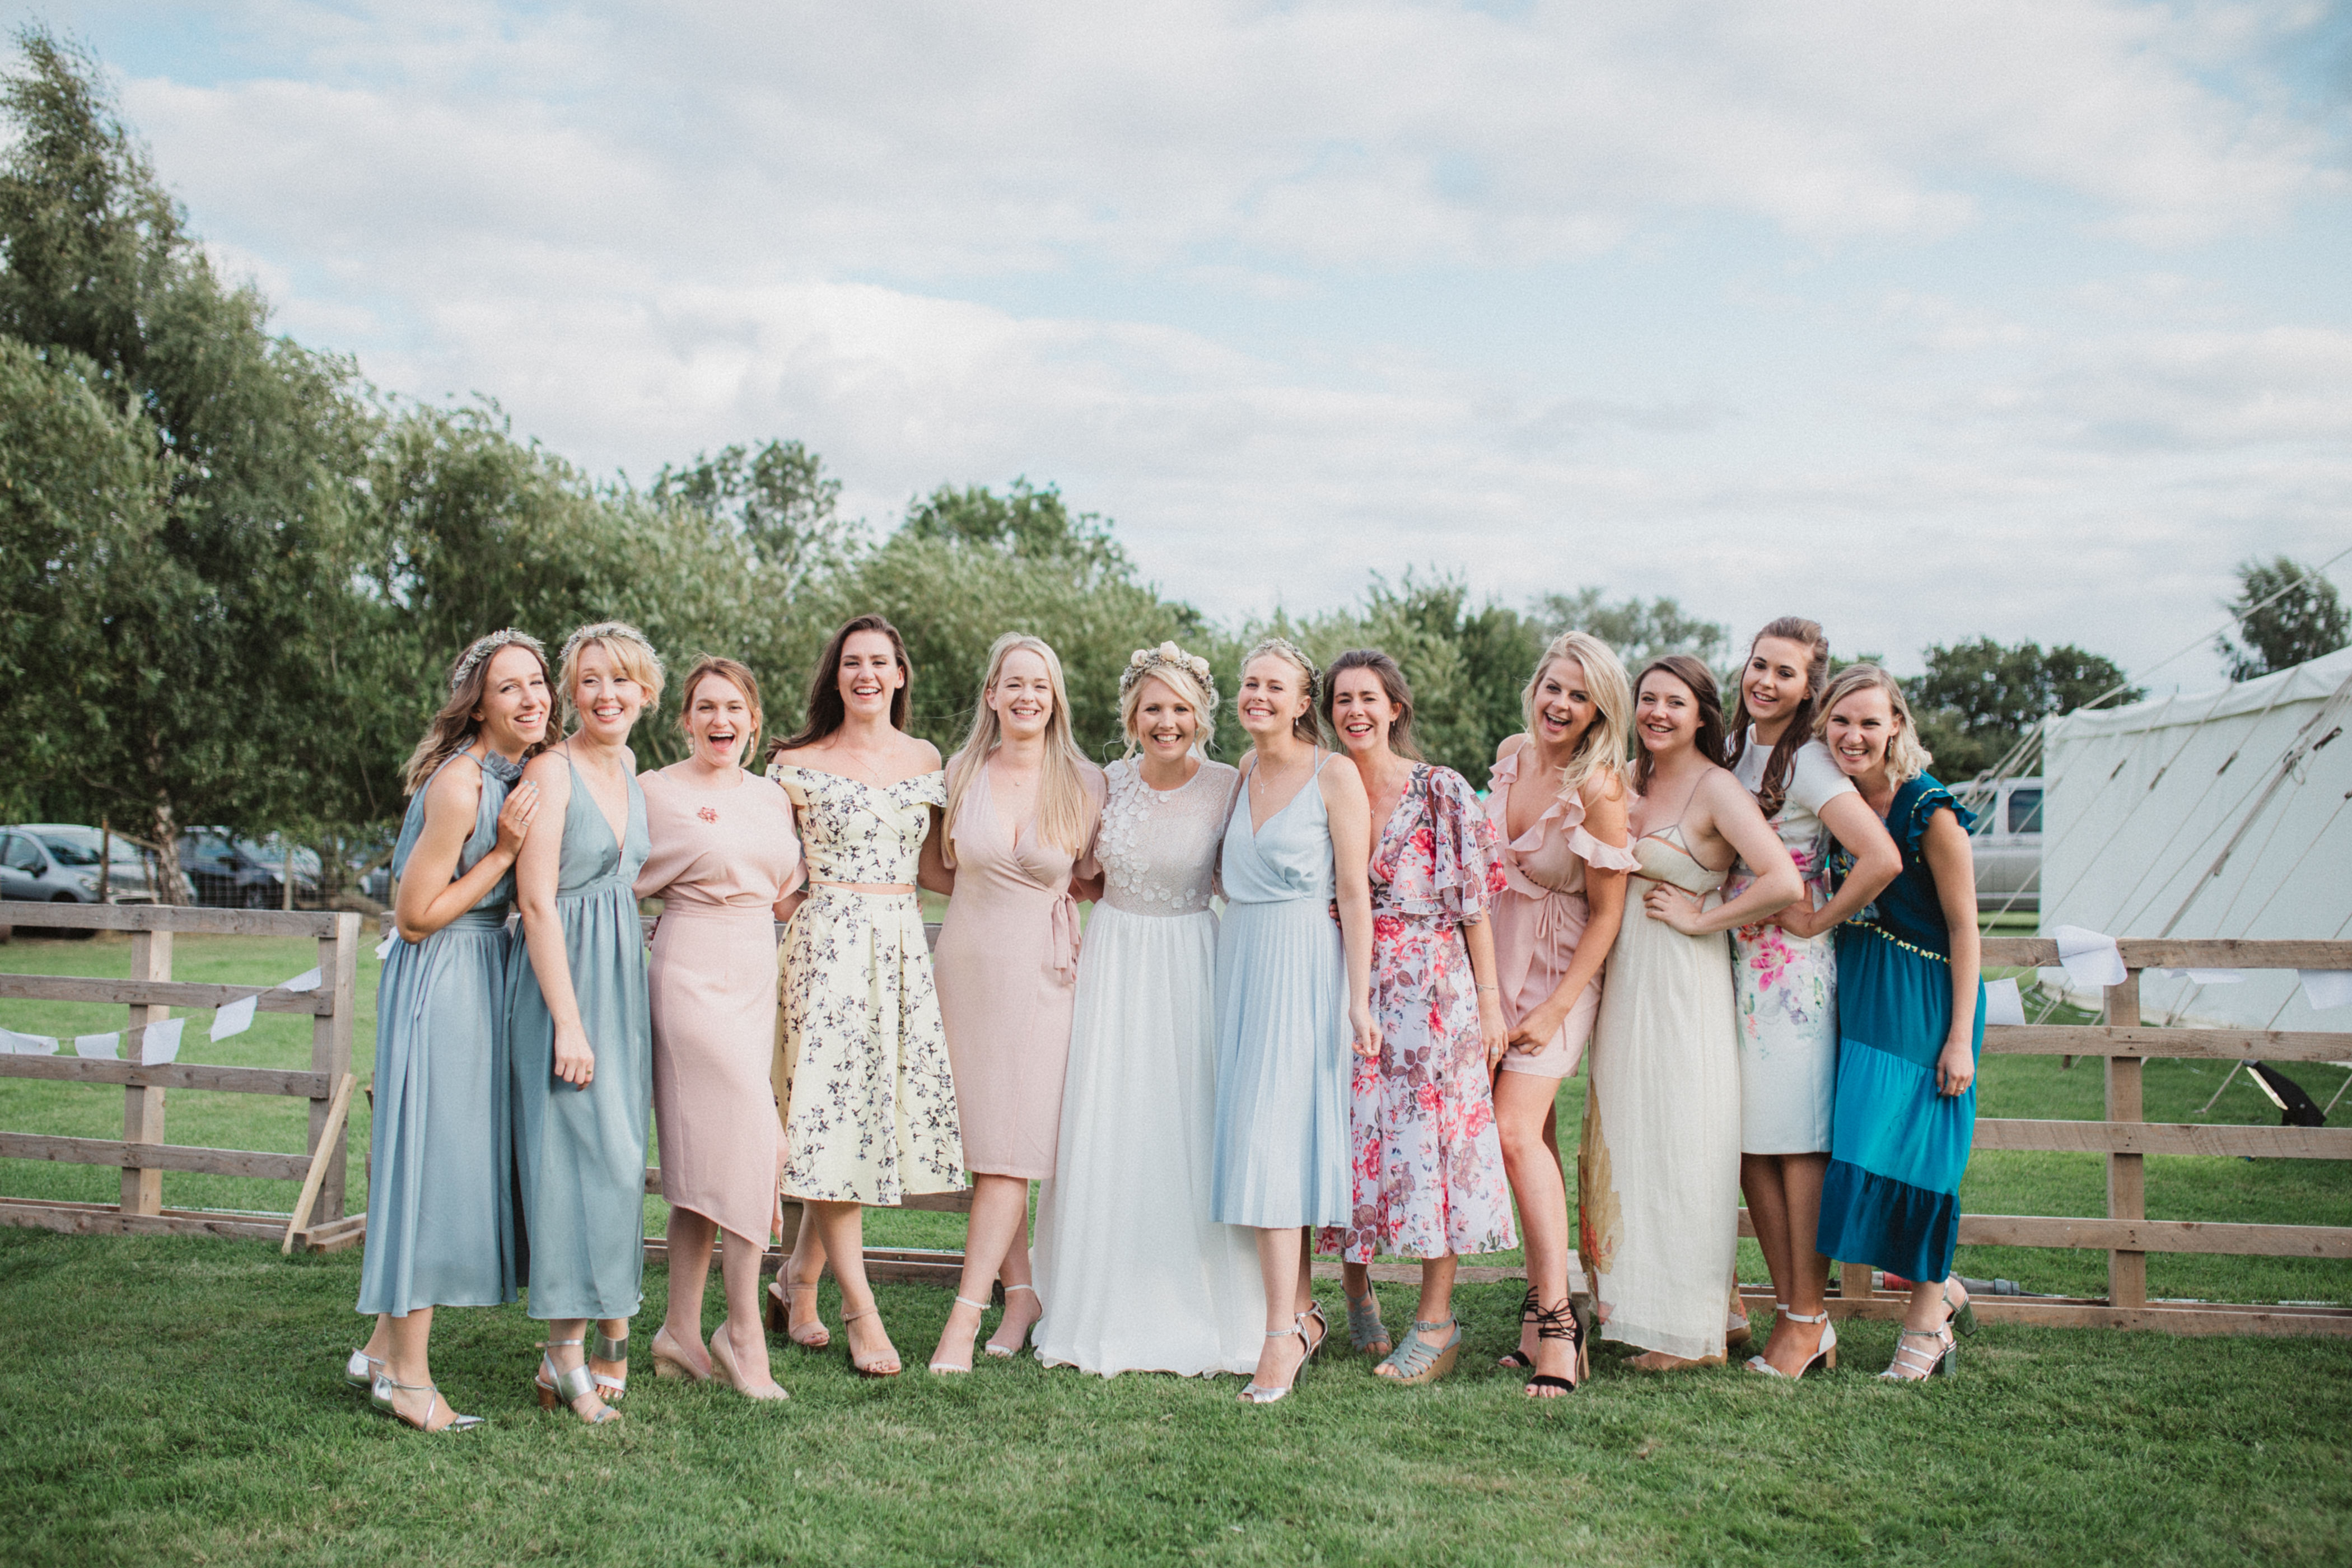 laughing bride and bridesmaids together at marquee wedding in woodbridge, suffolk